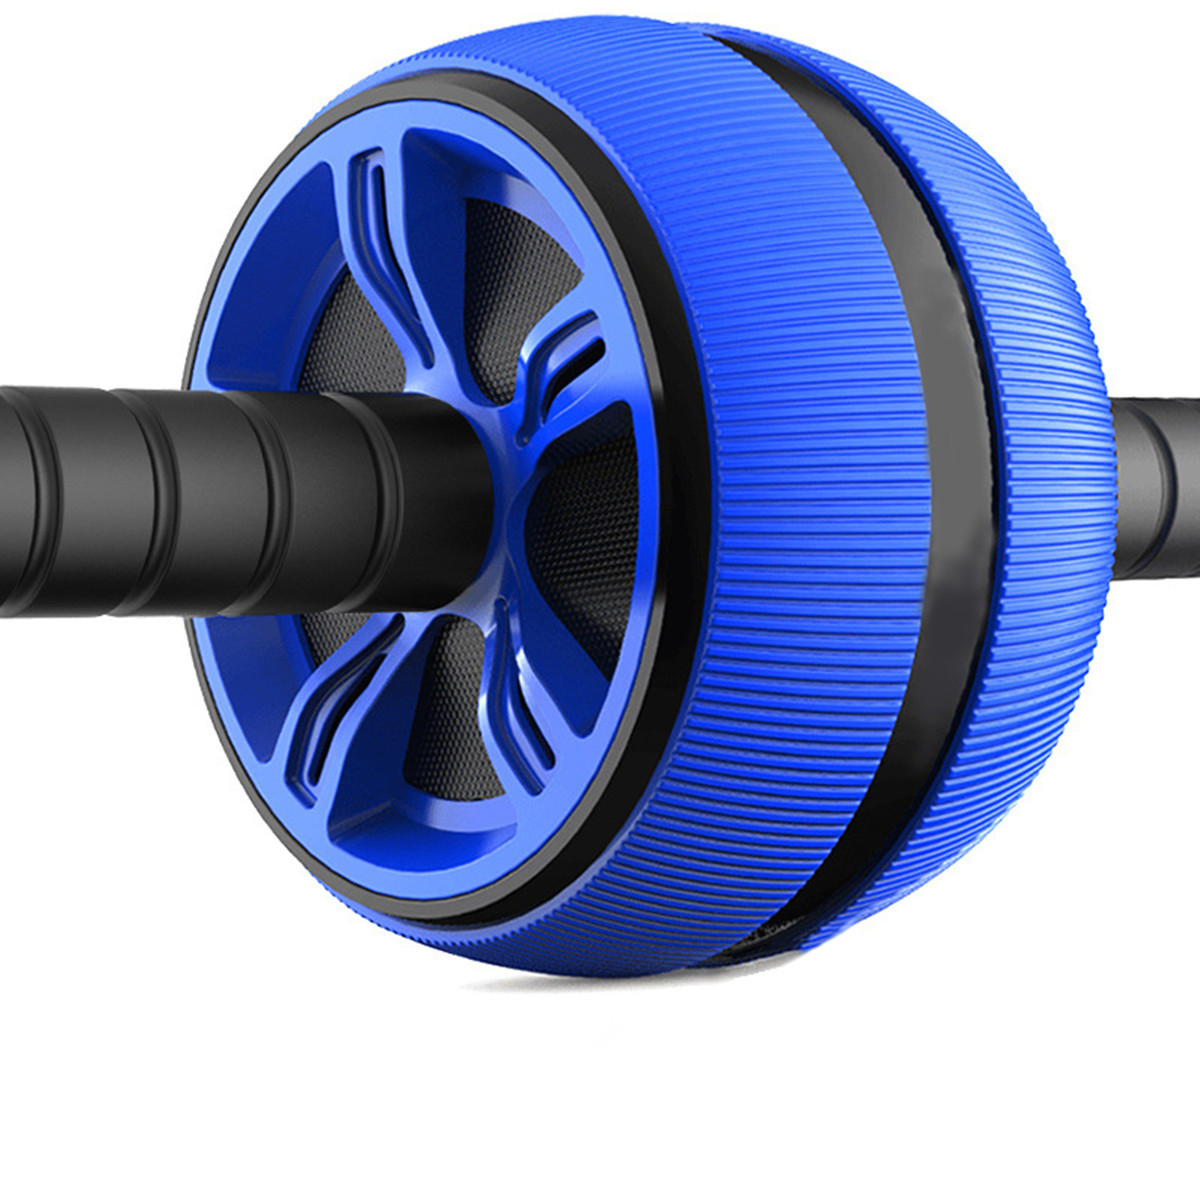 Abs Roller with Strong Bearing Capacity Ideal for burning Extra Calories from Arms Back and Belly 7